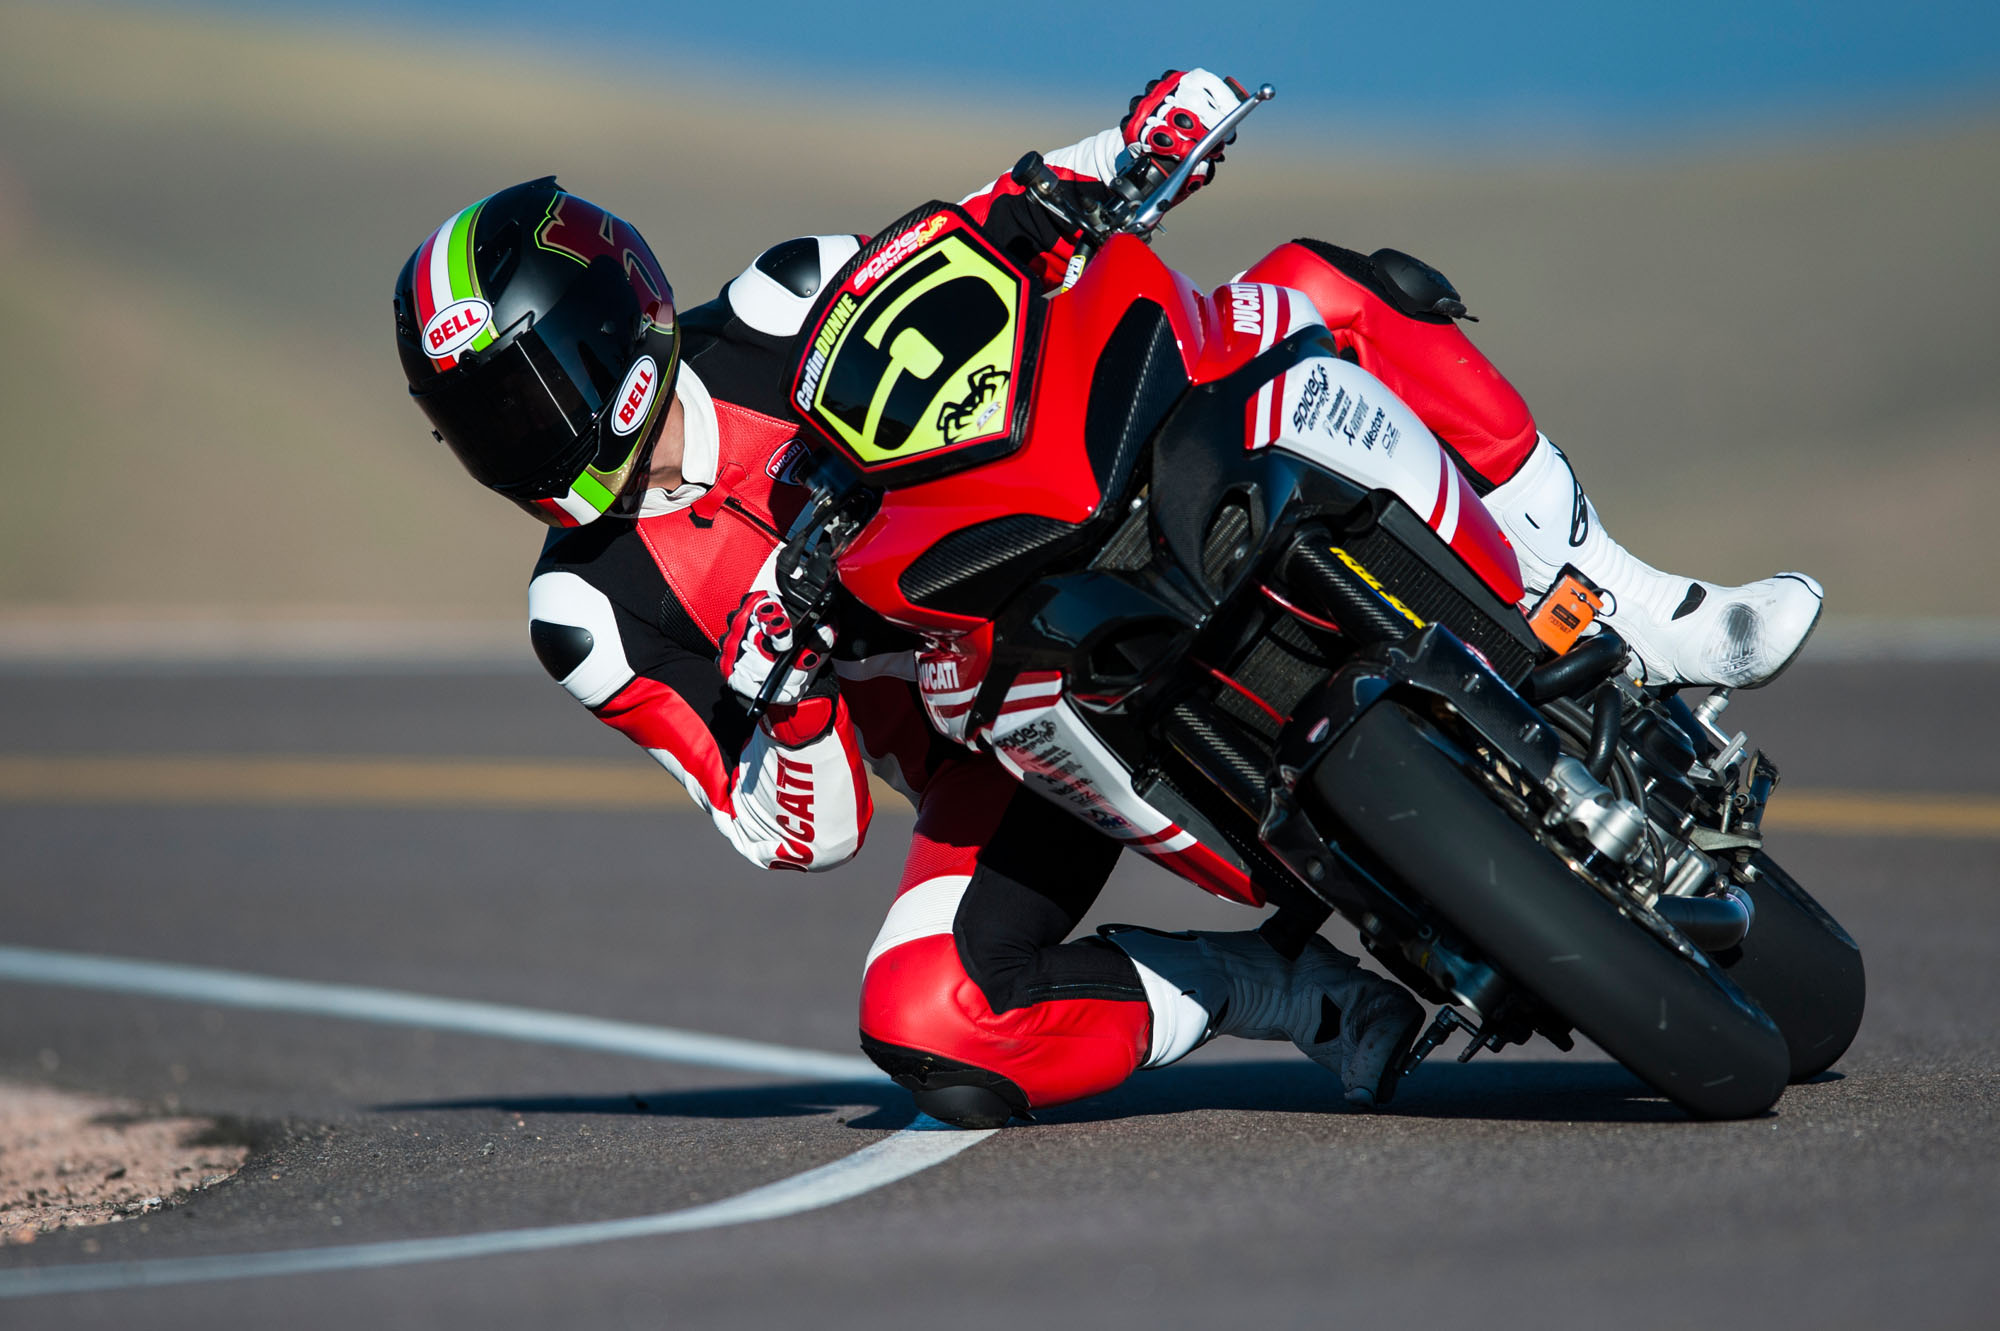 Bikes Racing Cars Motorcycle news Racing news